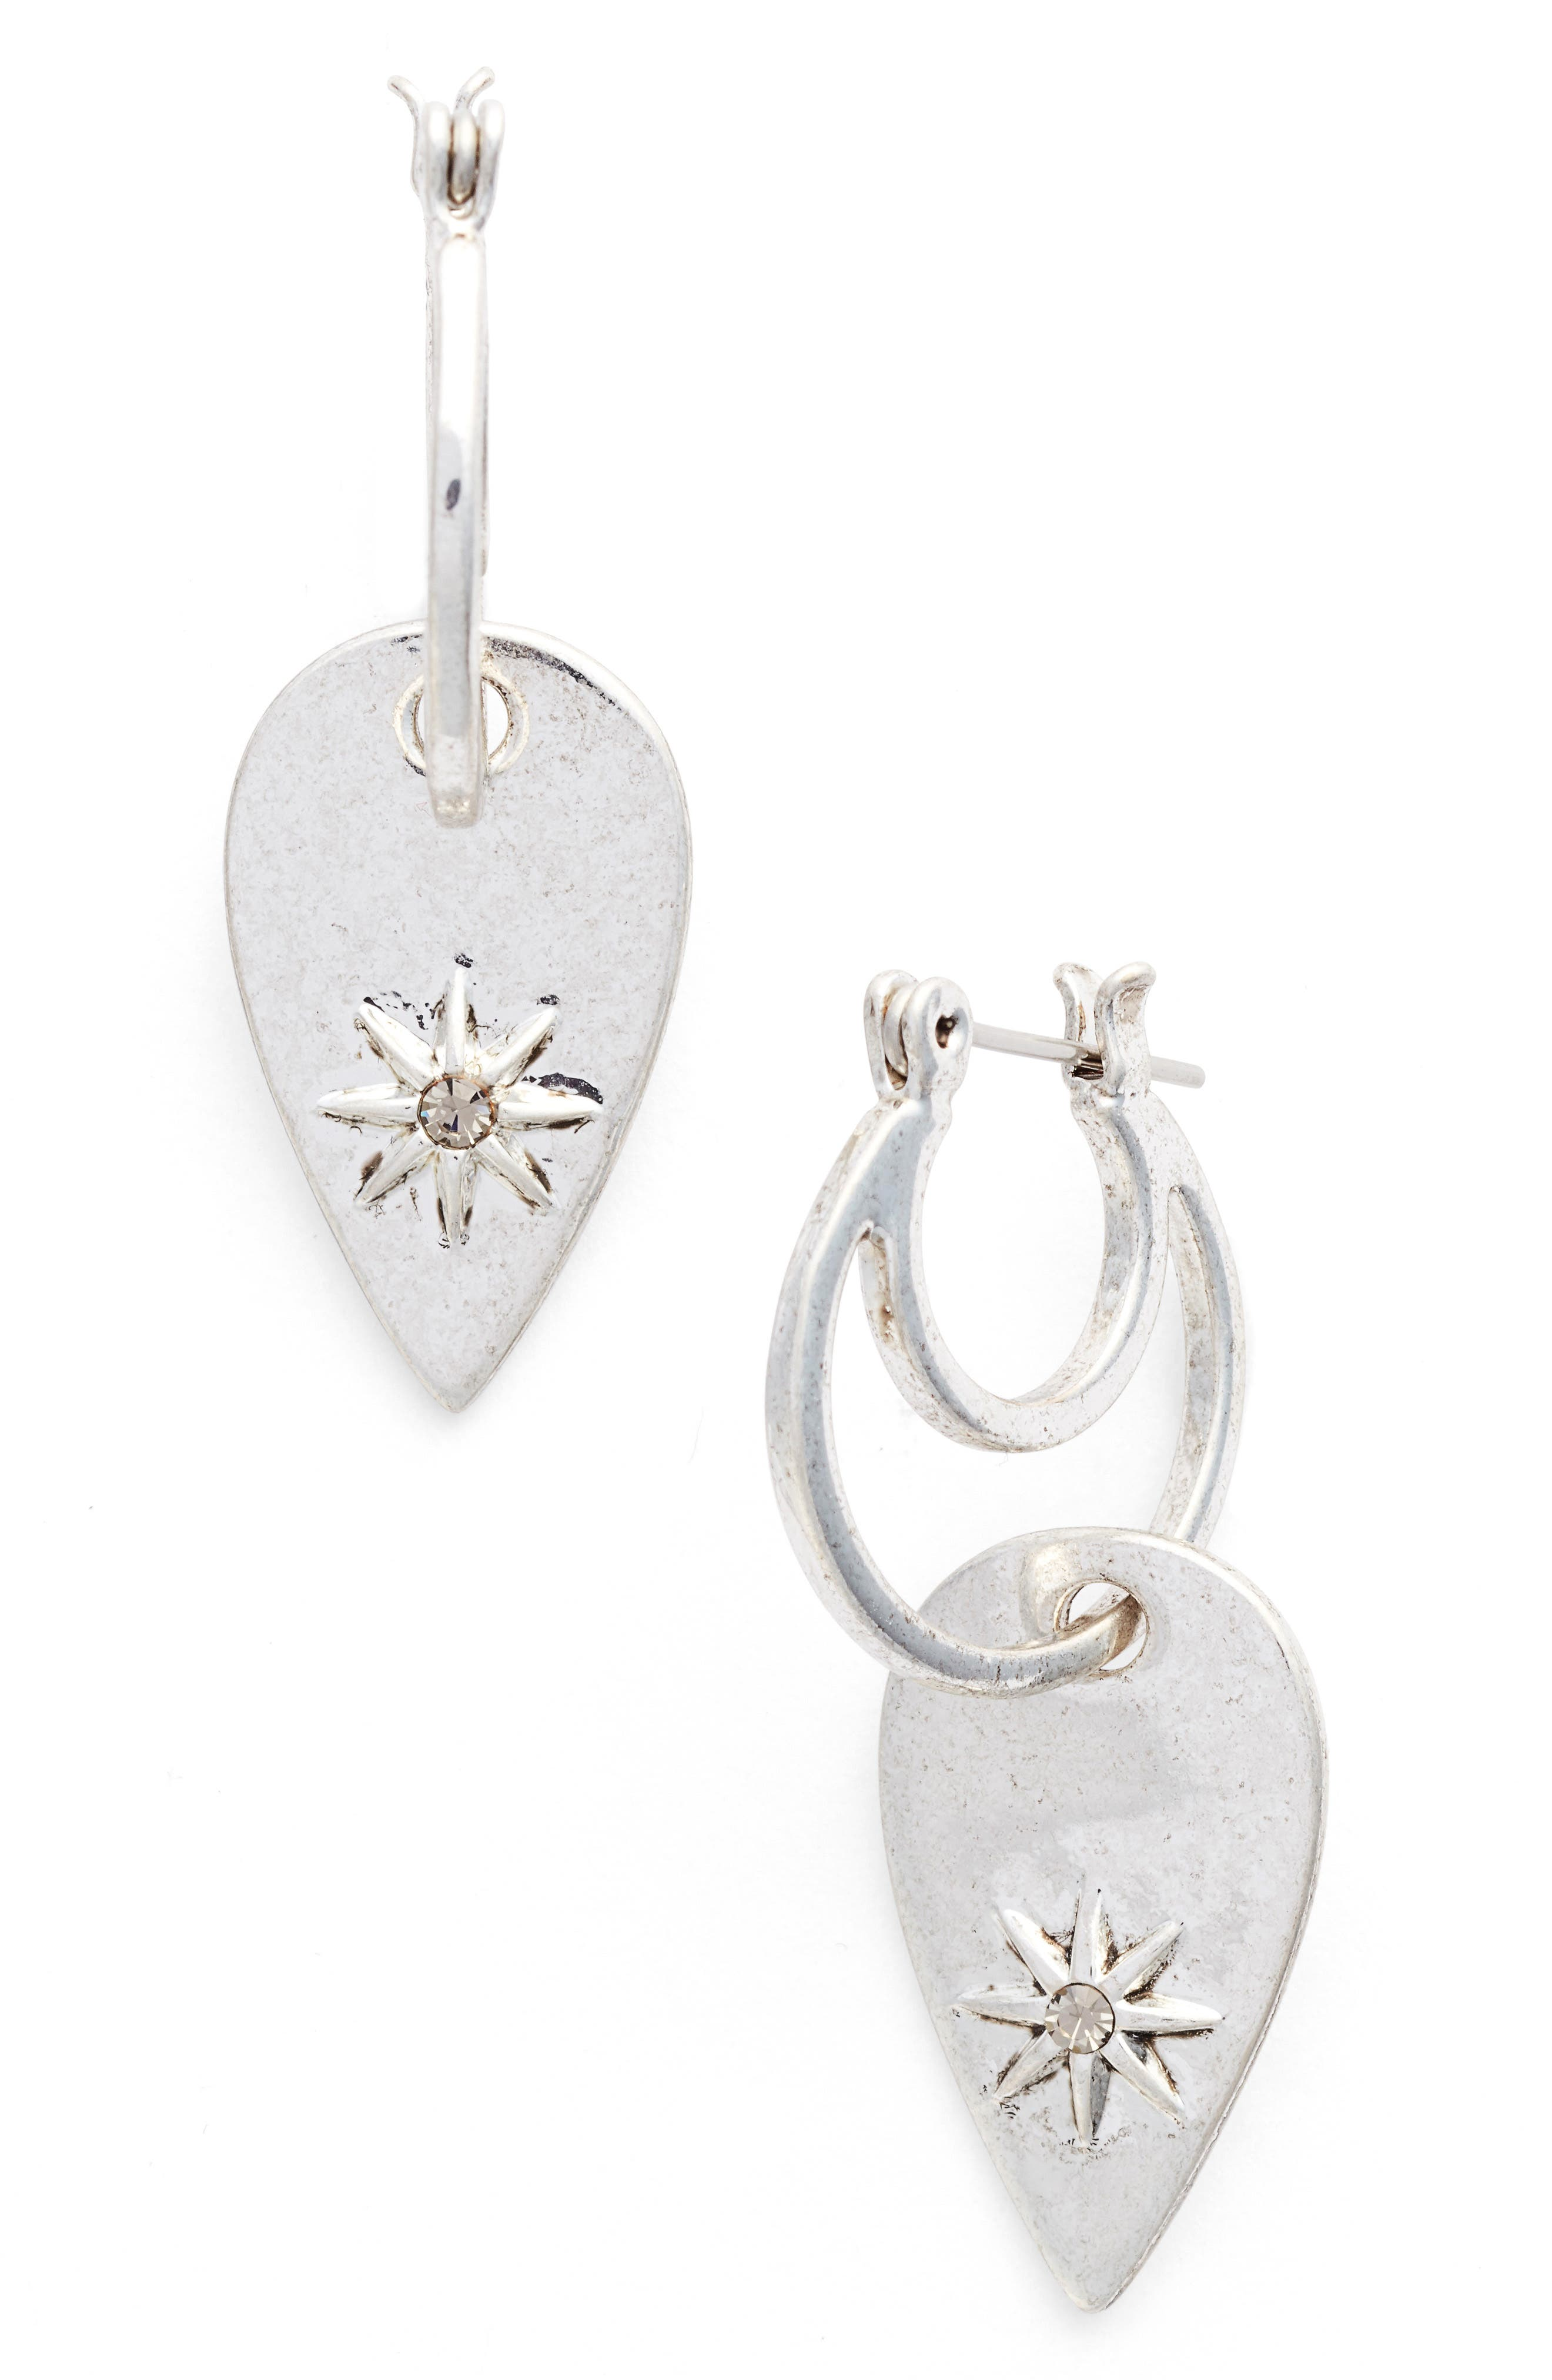 Starburst Double Drop Earrings,                         Main,                         color, 040